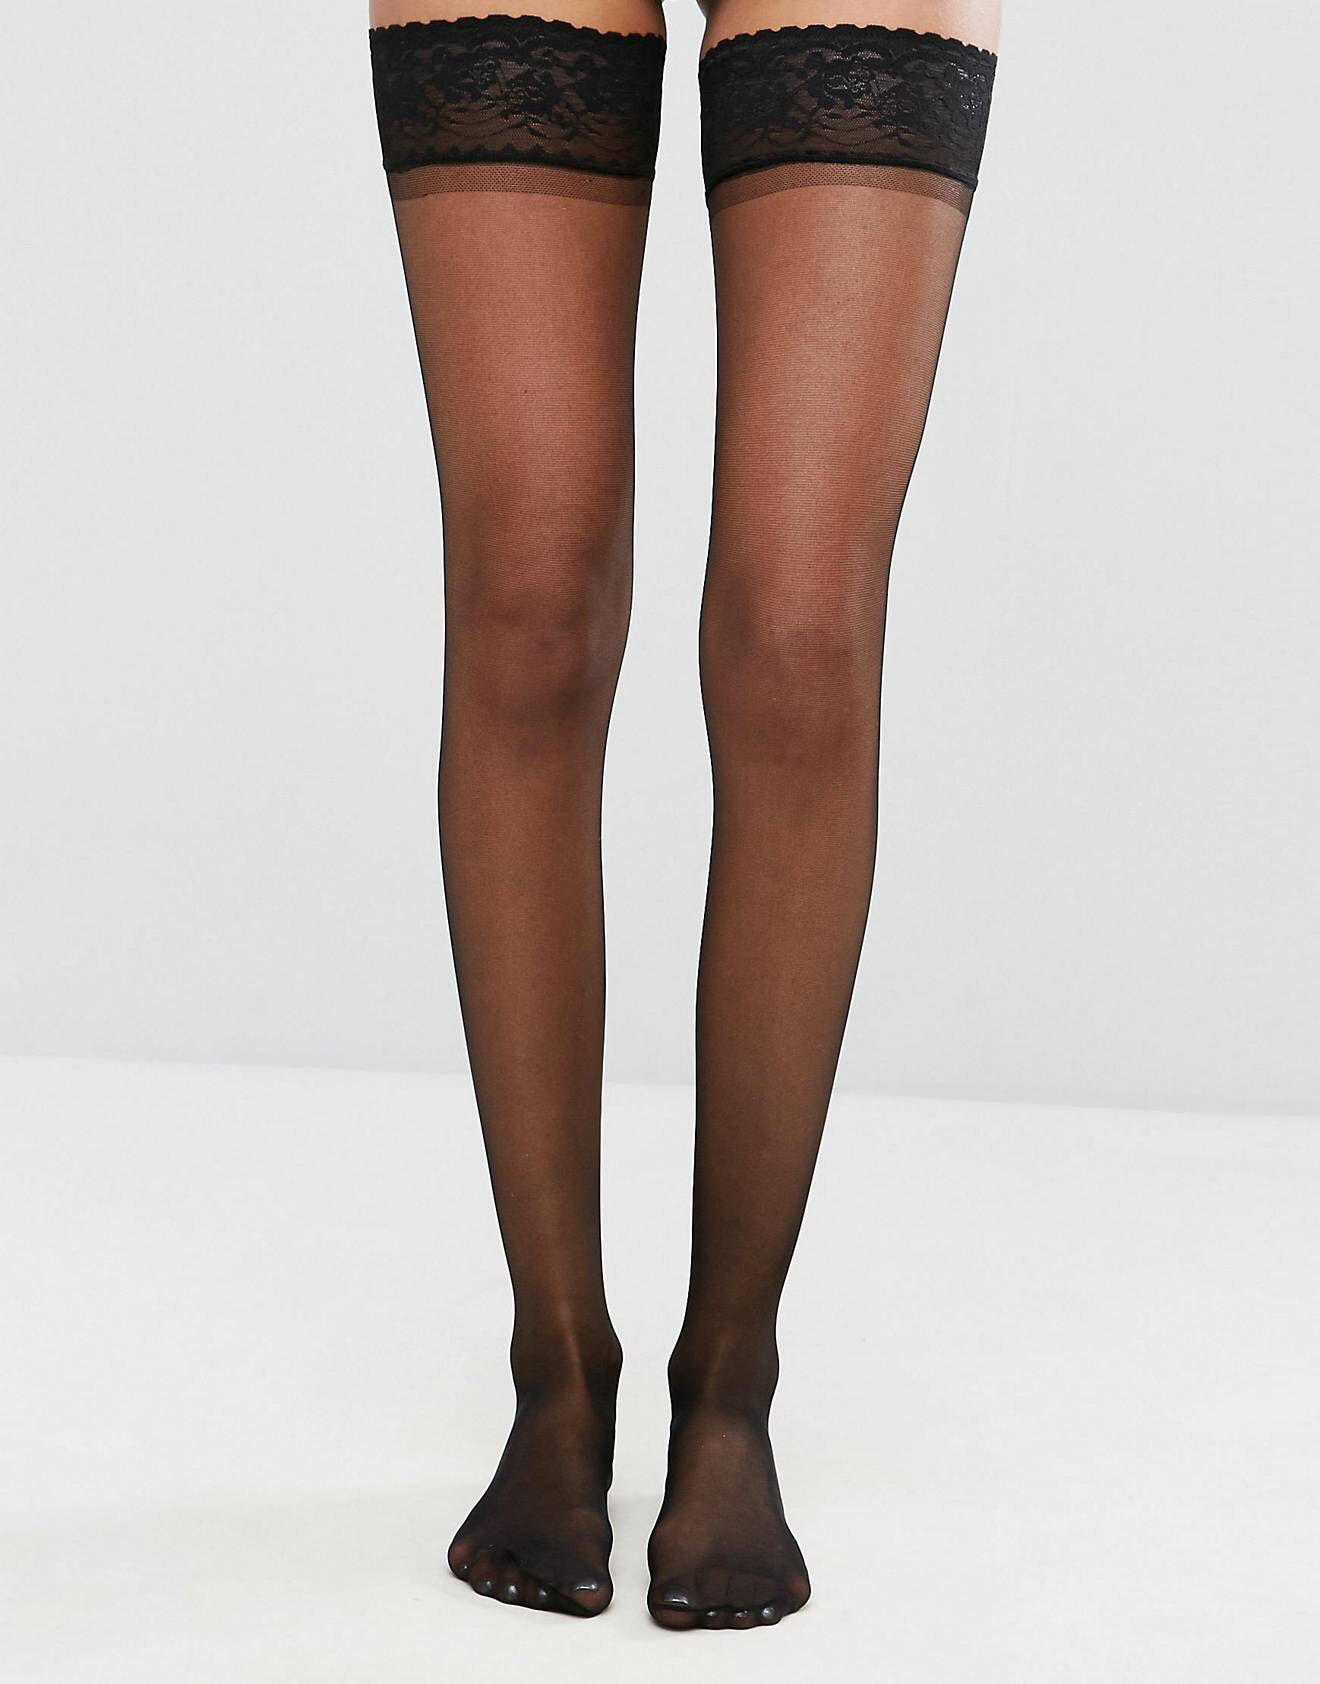 09329ebed DESIGN 15 denier lace top stockings in 2019